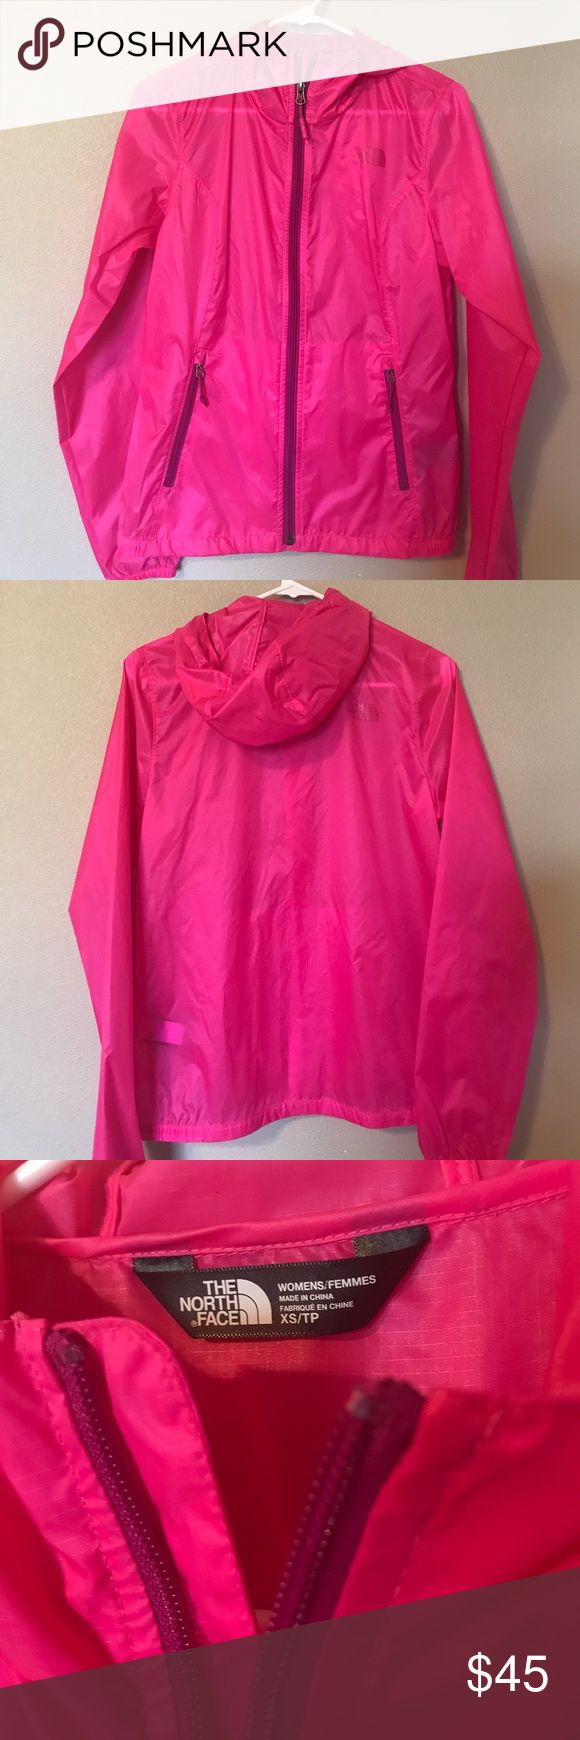 Neon Pink North Face Windbreaker/Rain Jacket NWOT North Face Pink Rain Jacket/Windbreaker; Women's XS; Lightweight/Sheer; Has hood & two front pockets; Smoke Free Home; No Trades The North Face Jackets & Coats